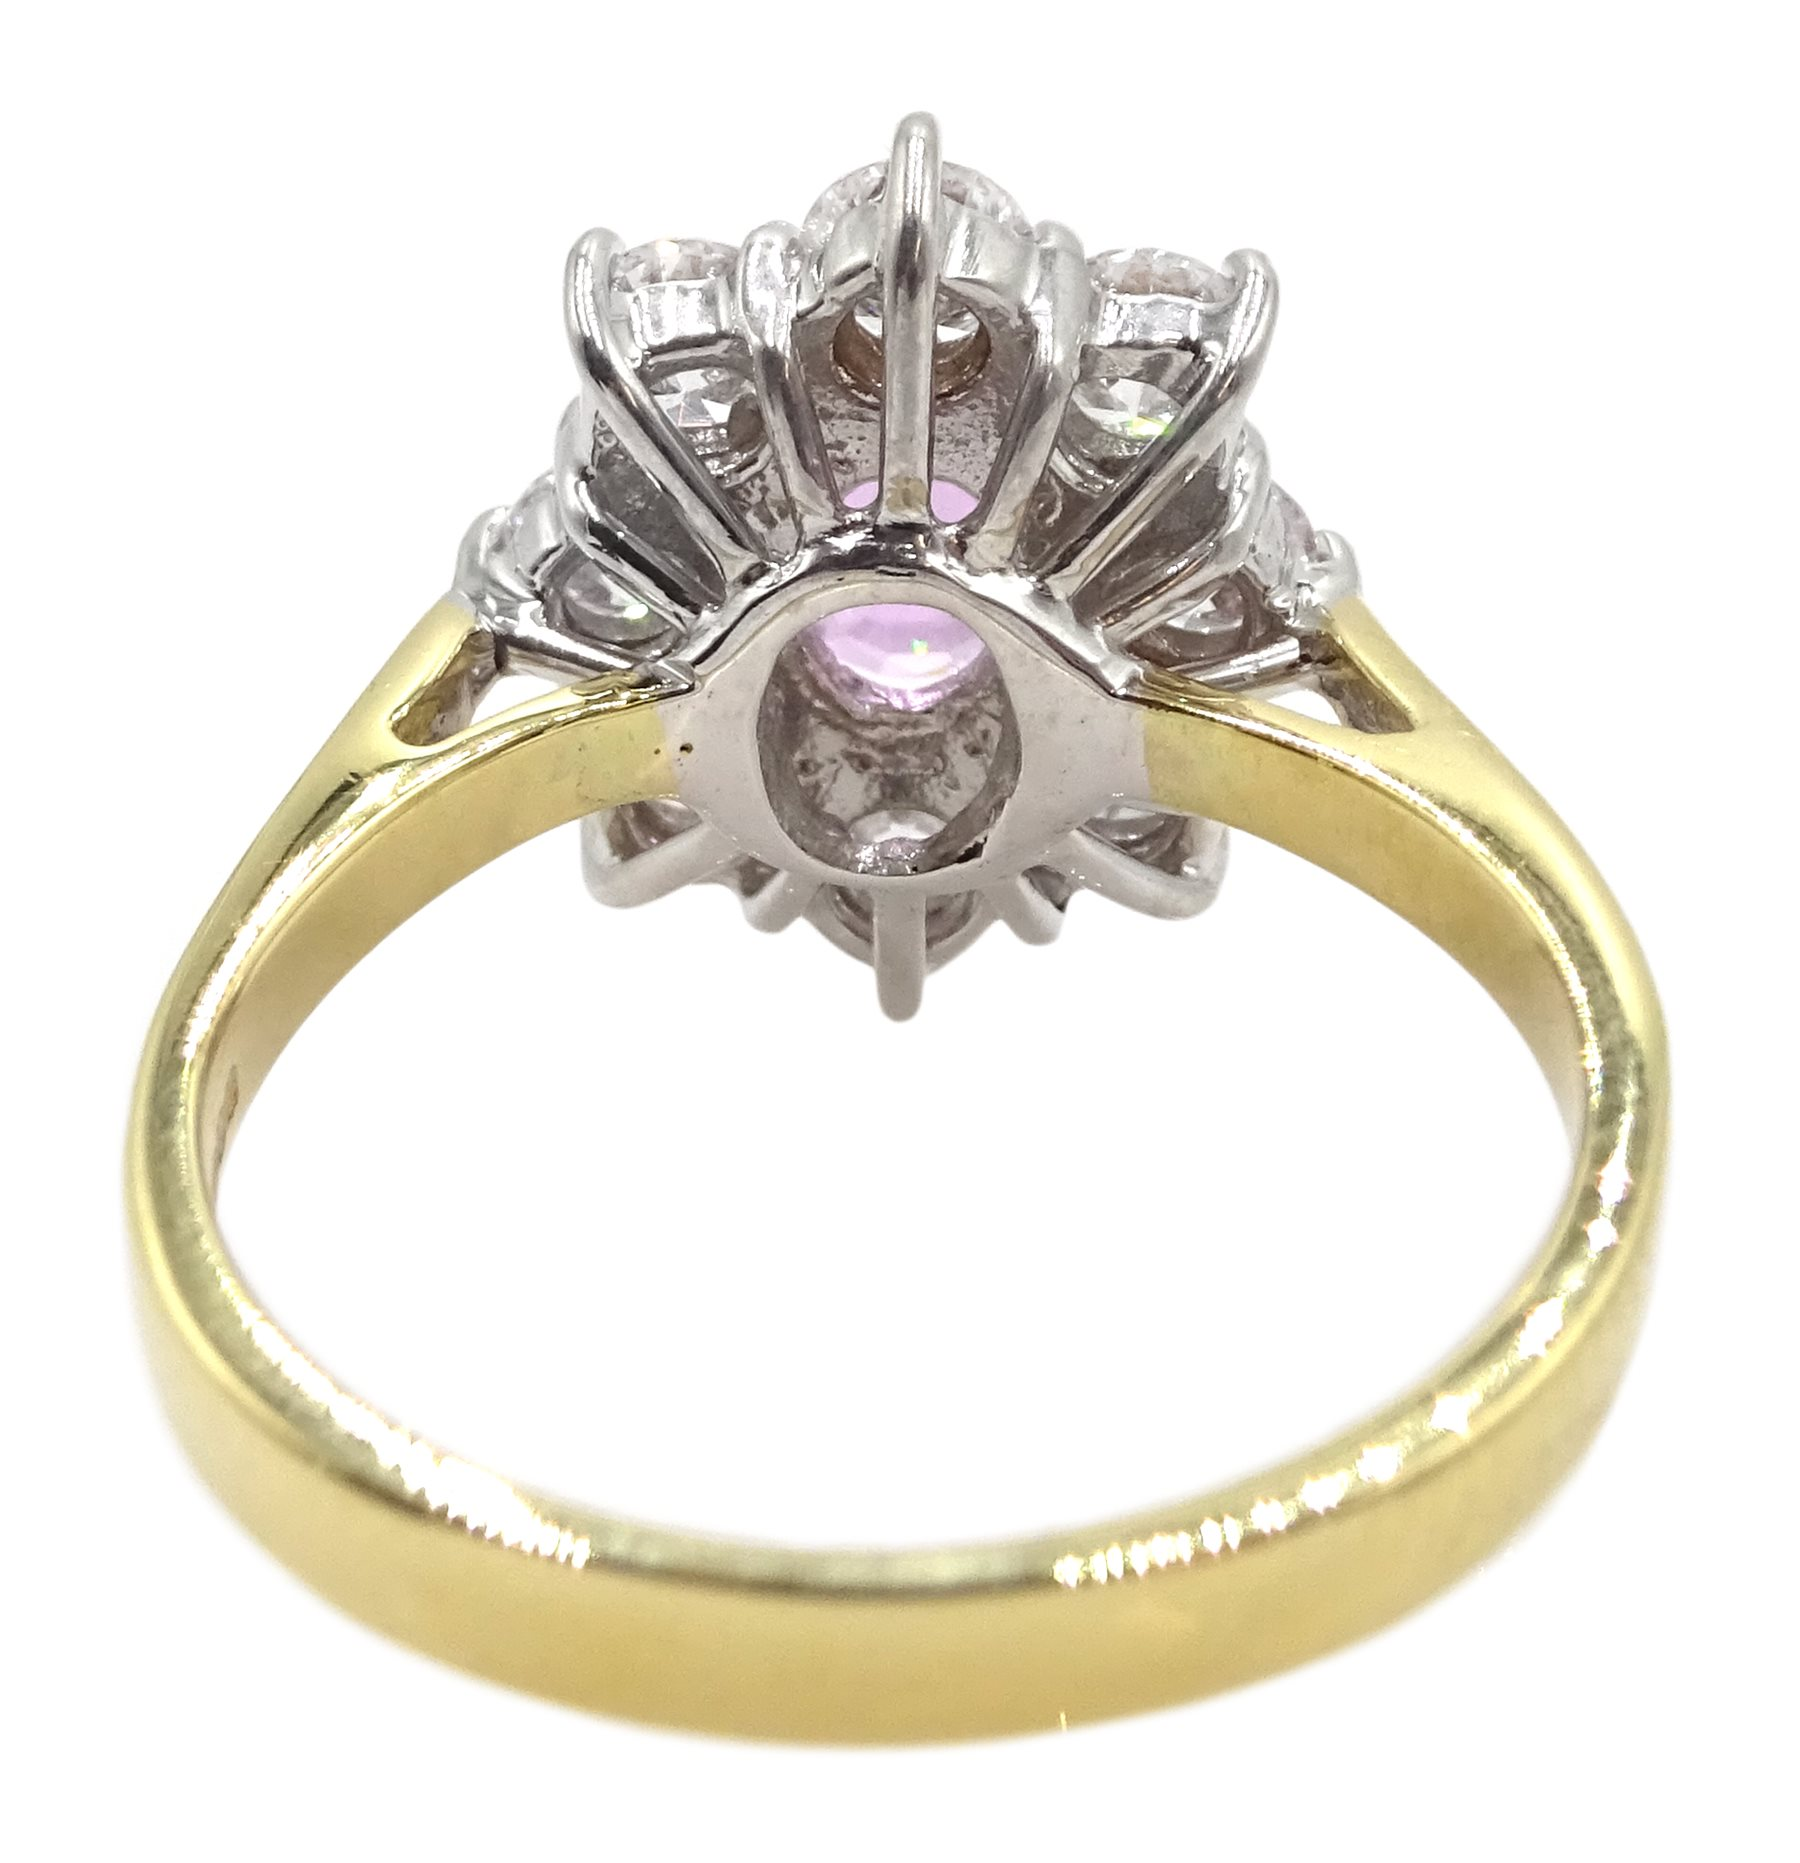 18ct gold pink sapphire and diamond cluster ring - Image 6 of 6